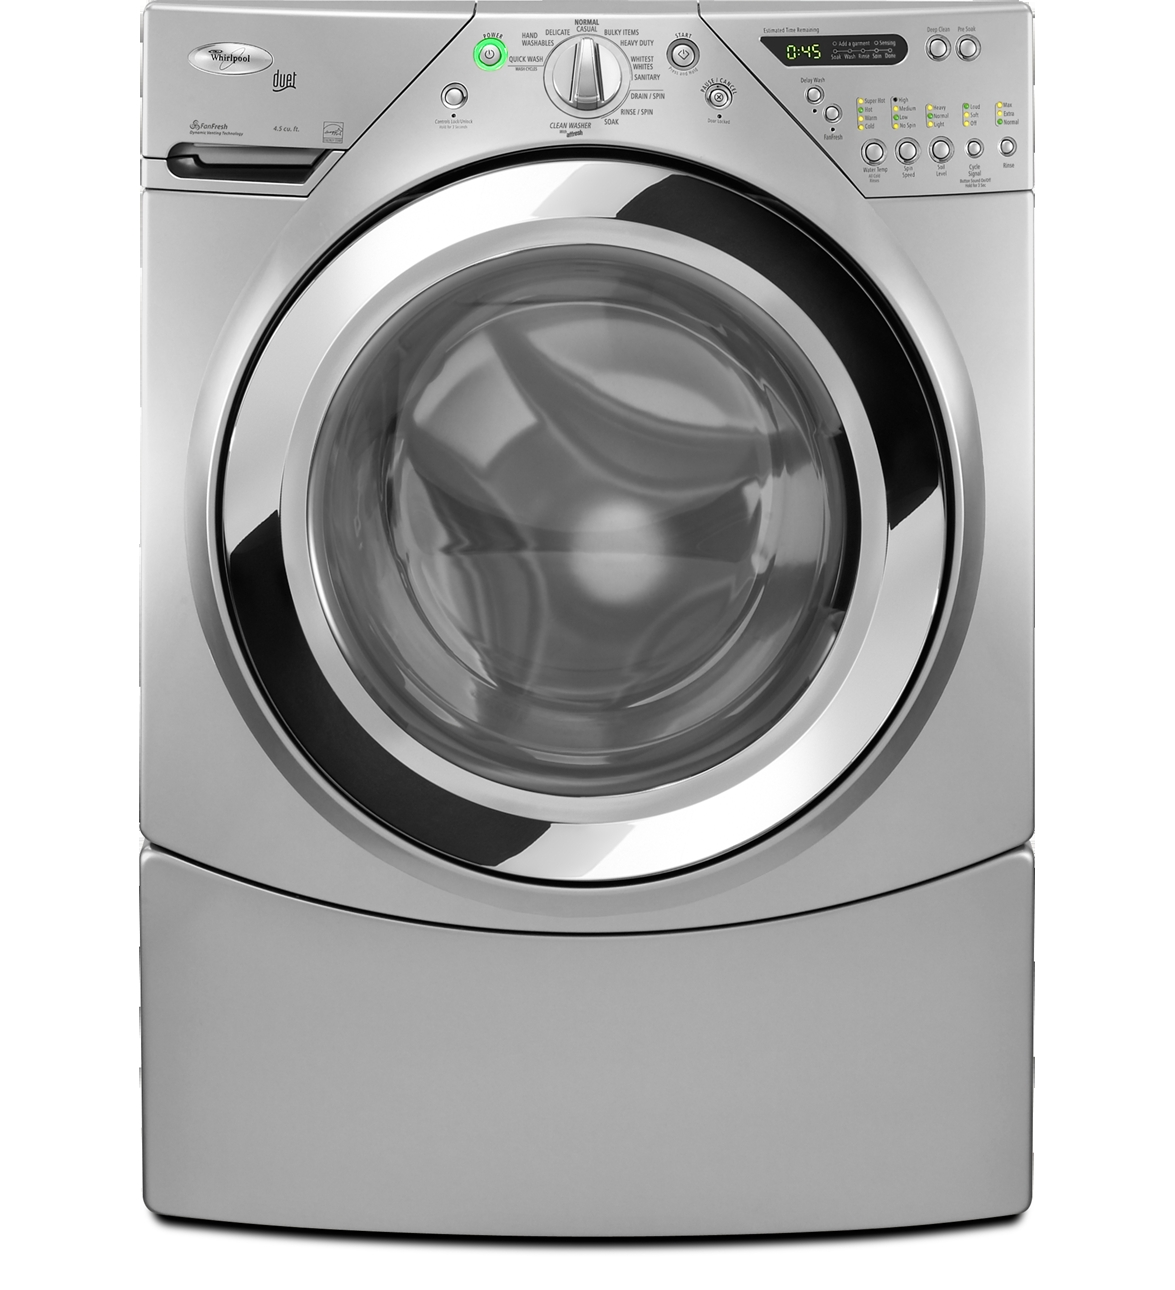 Wfw9470wl Whirlpool Wfw9470wl Duet Front Load Tumble